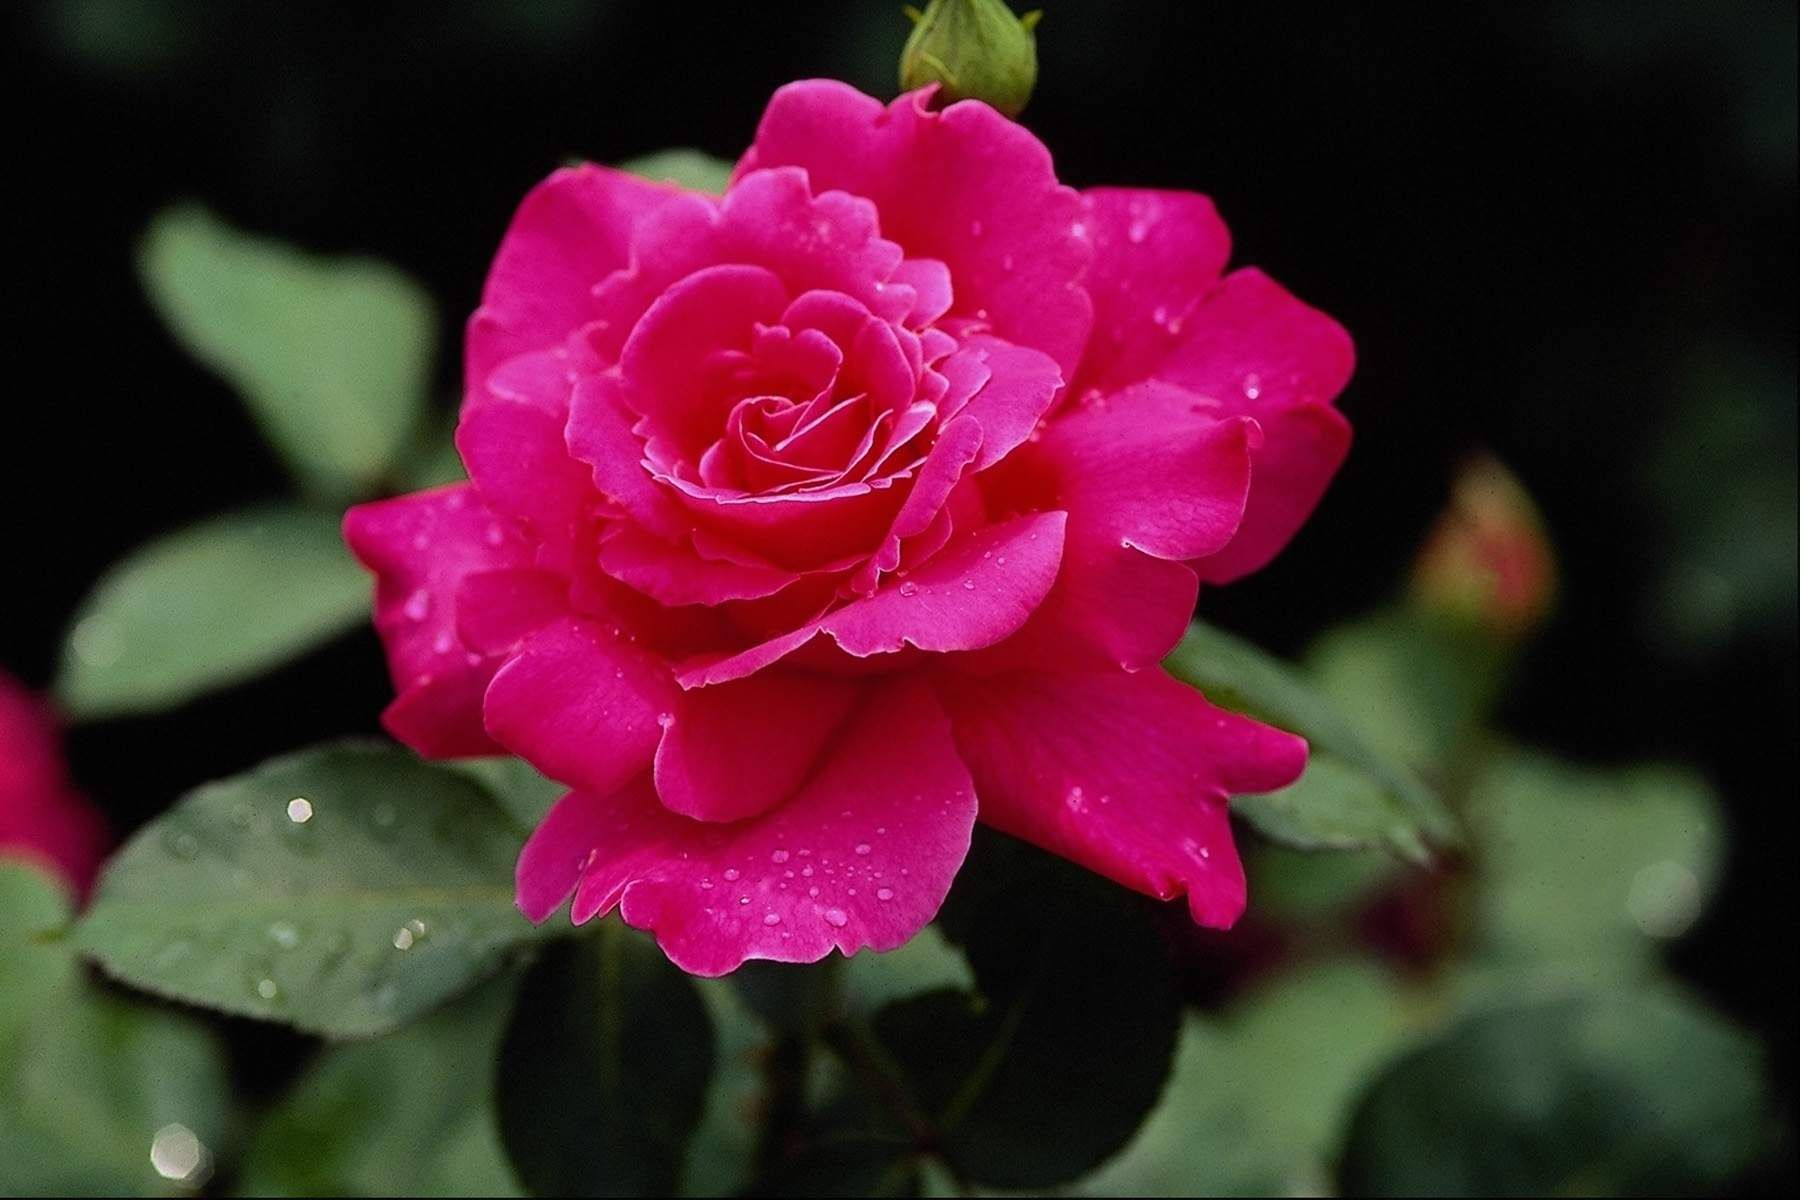 Beautiful rose flowers images and wallpapers download roses beautiful rose flowers images and wallpapers download izmirmasajfo Image collections